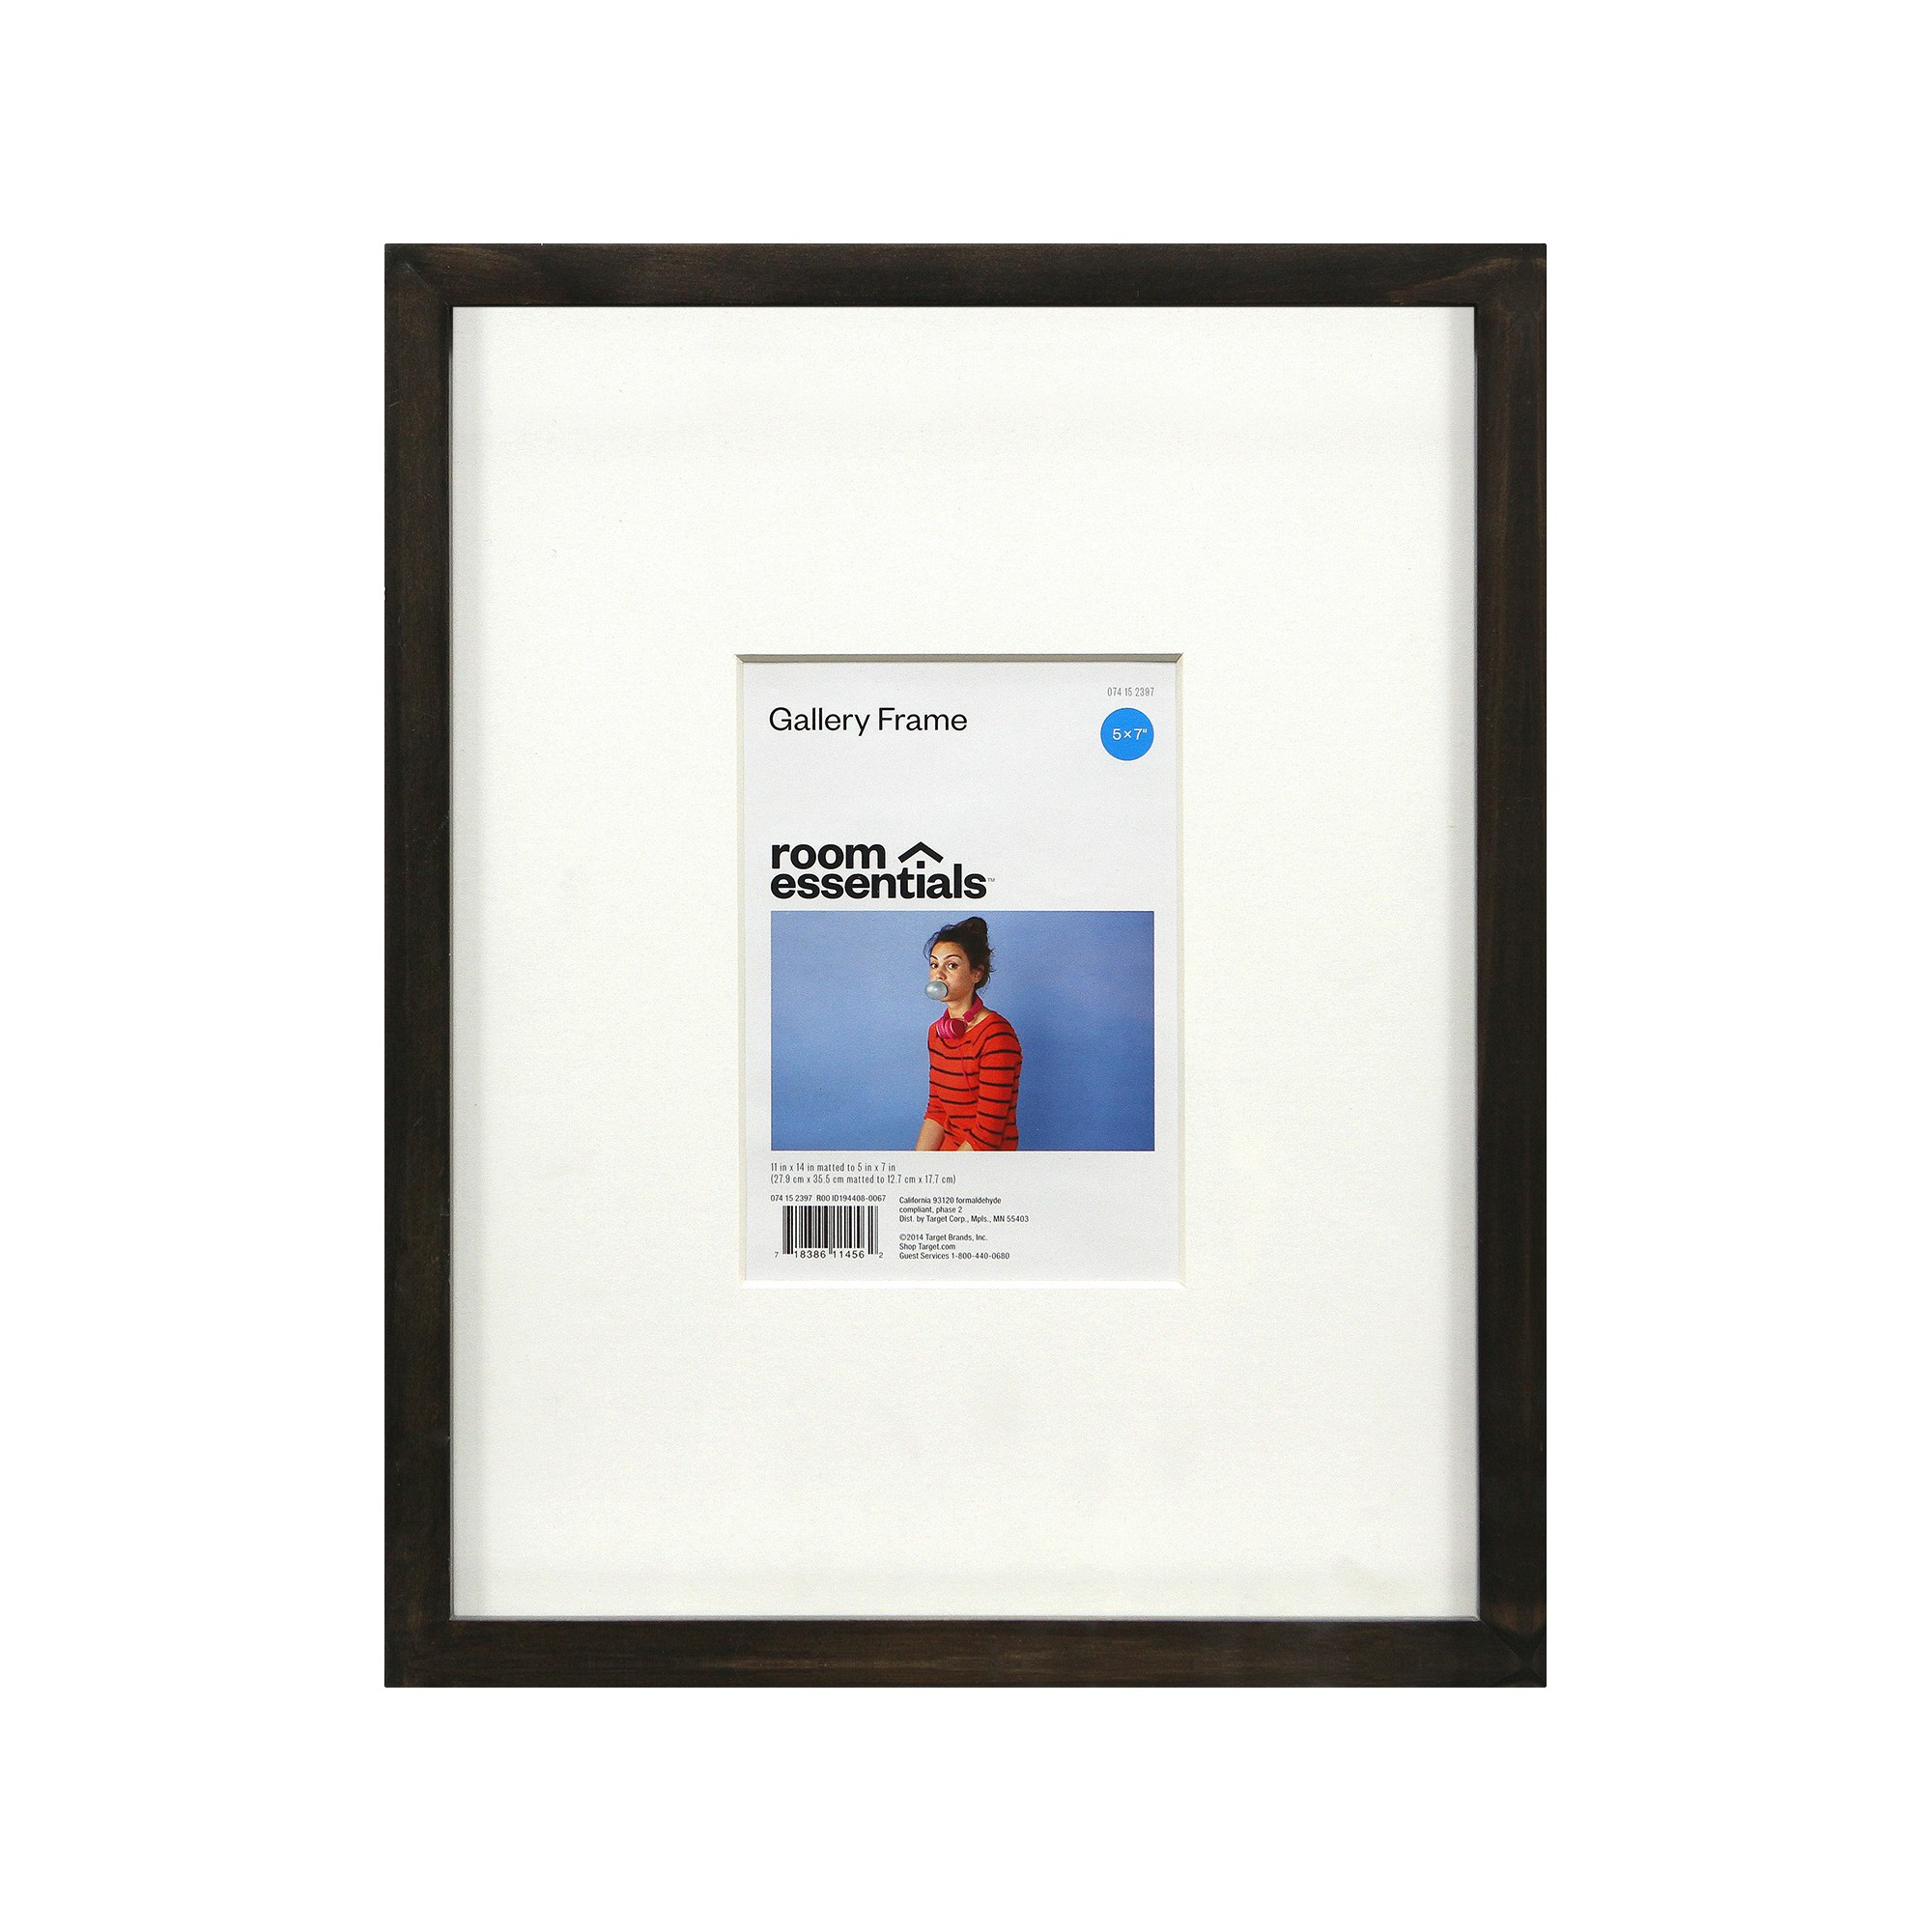 Gallery Frame Gray 11 X 14 Holds 5 X 7 Photo Room Essentials Room Essentials Photo Room Gallery Frame